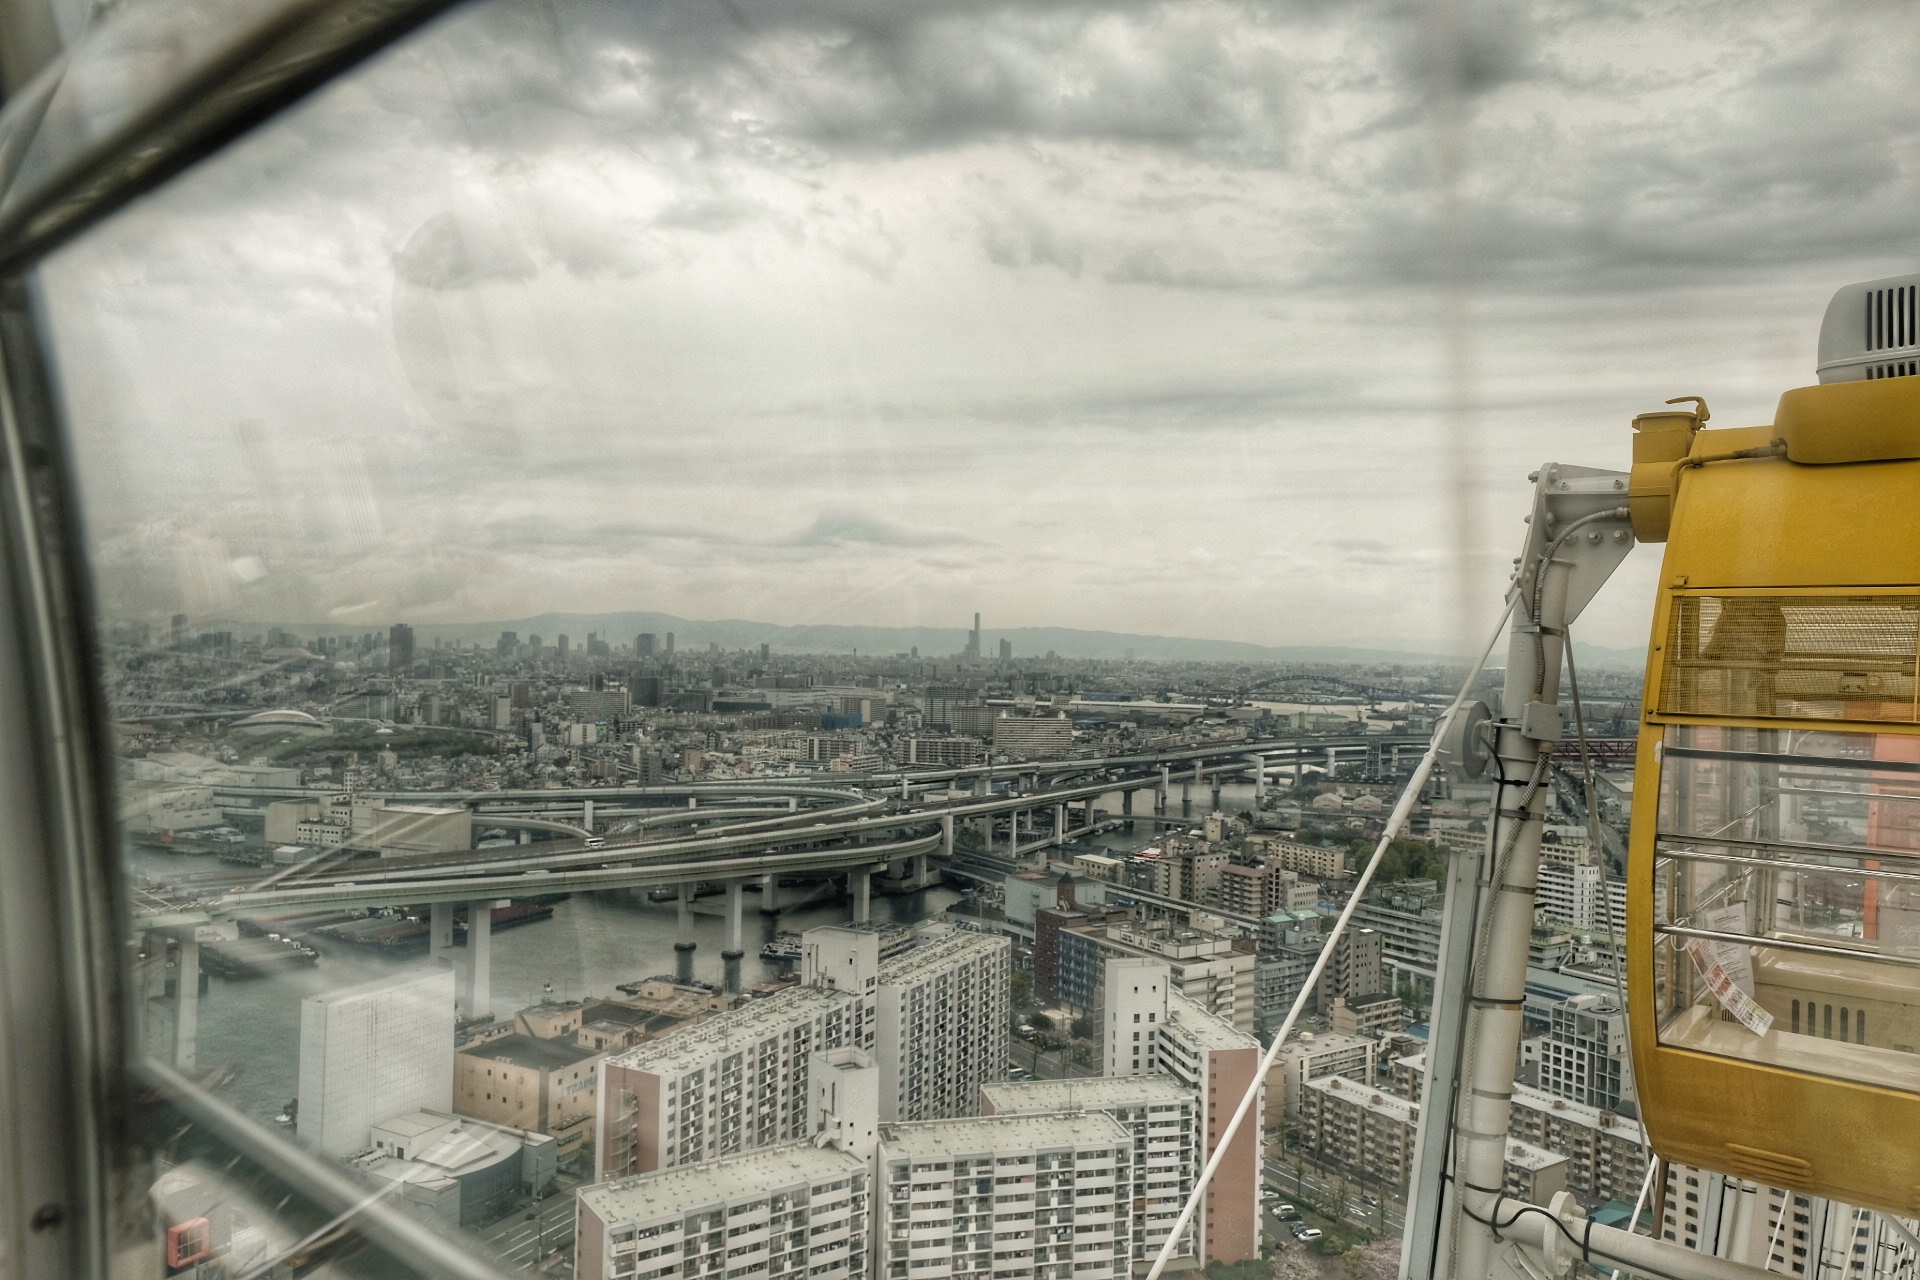 View of Osaka from the Tempozan Ferris Wheel.